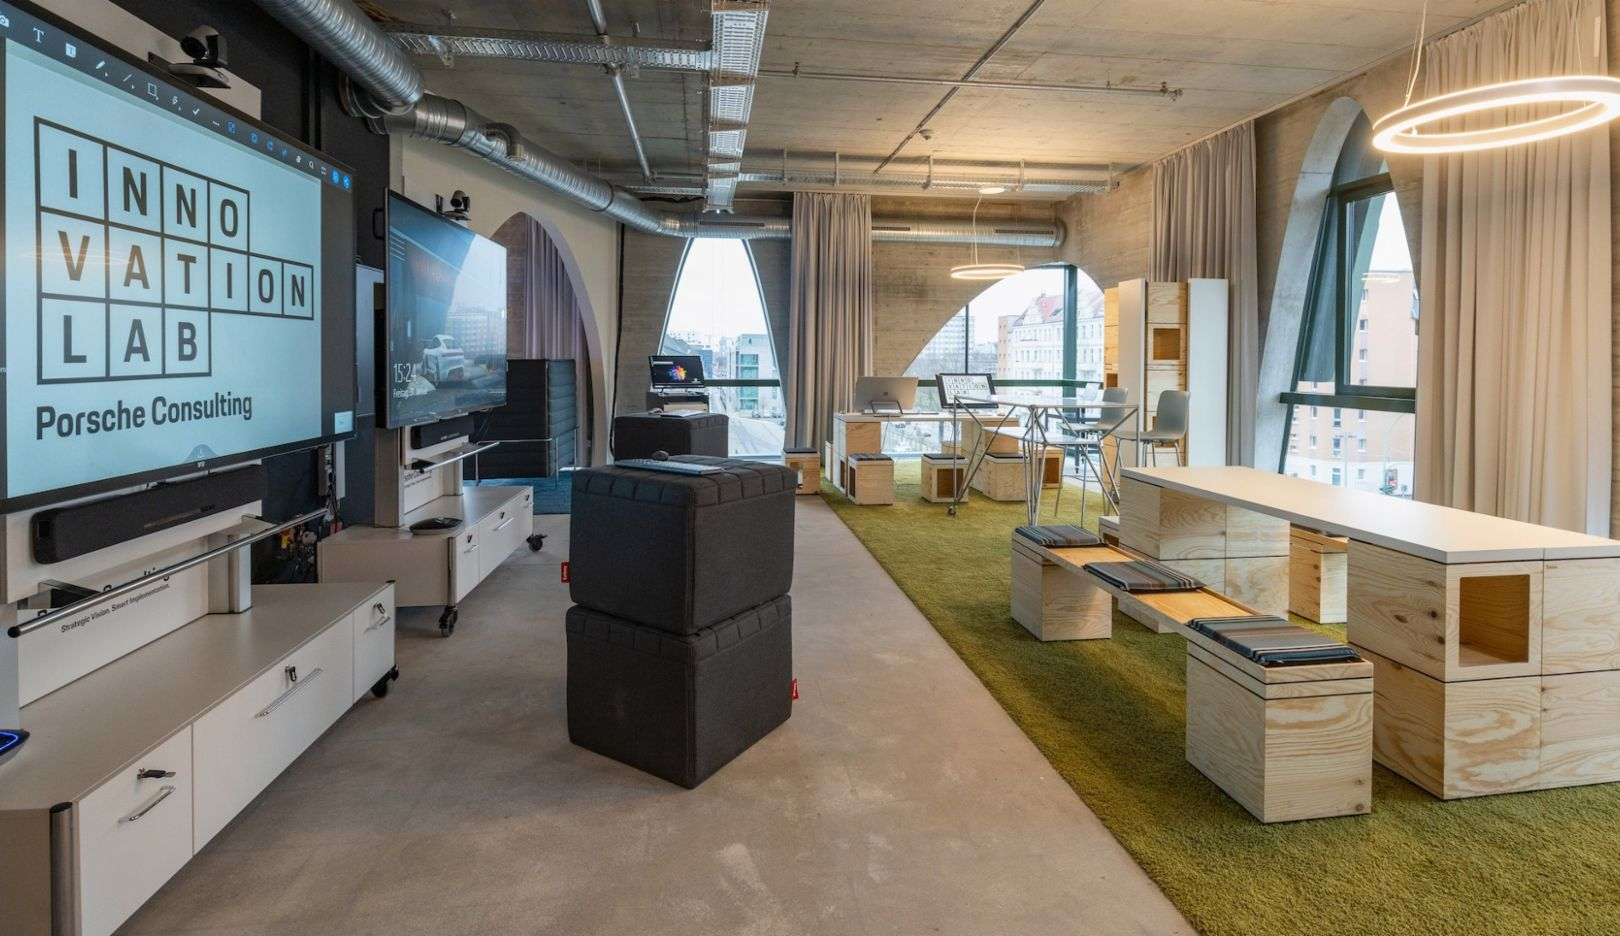 Porsche Consulting Innovation Lab, Berlin, 2020, Porsche Consulting GmbH